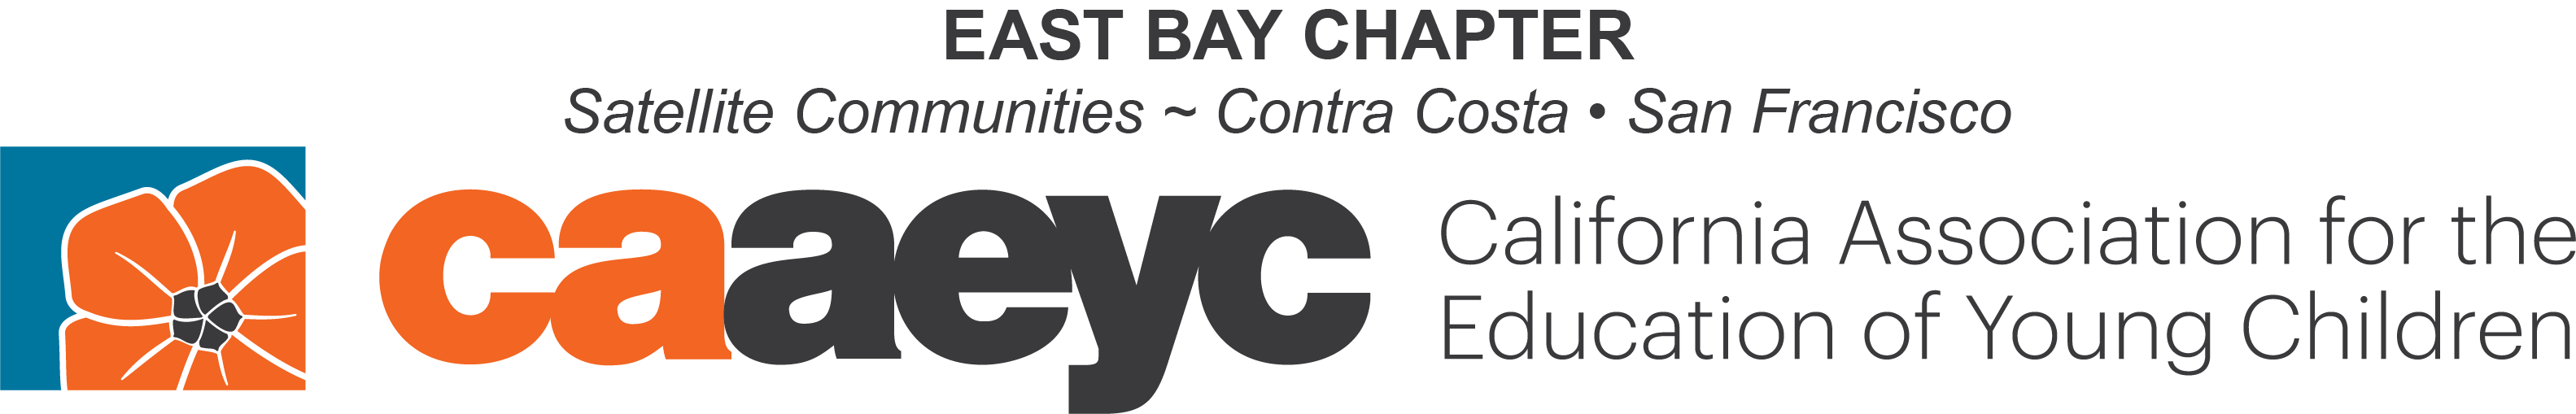 CAAEYC East Bay Chapter